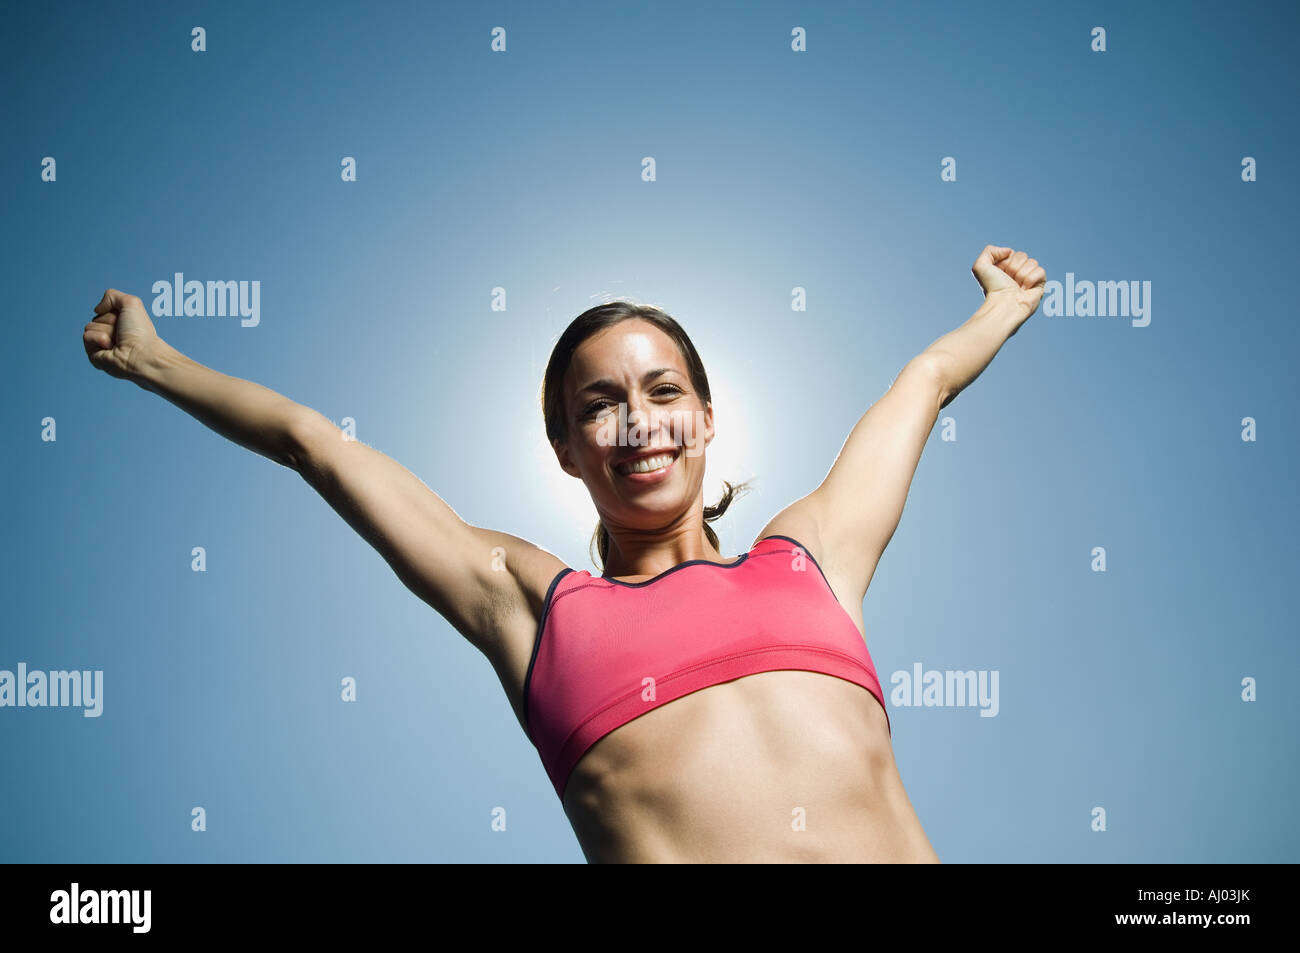 Woman in athletic gear with arms raised - Stock Image